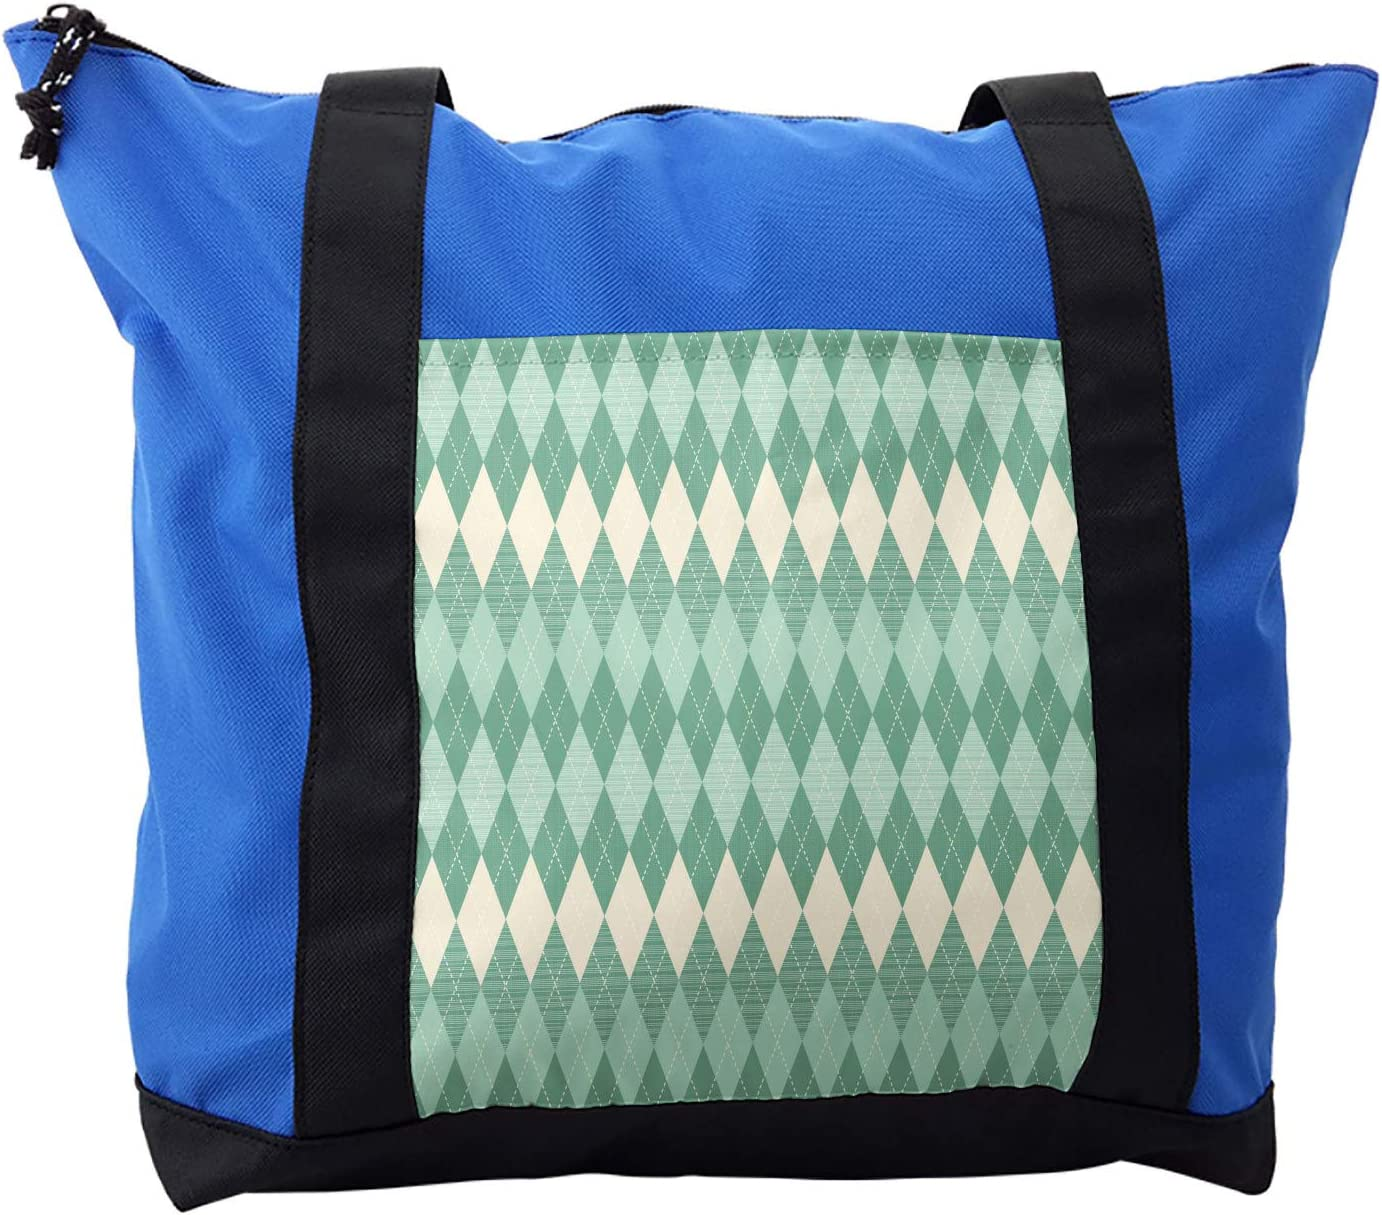 Ambesonne Aqua Shoulder Bag, Triangle Shapes Abstract, Durable with Zipper